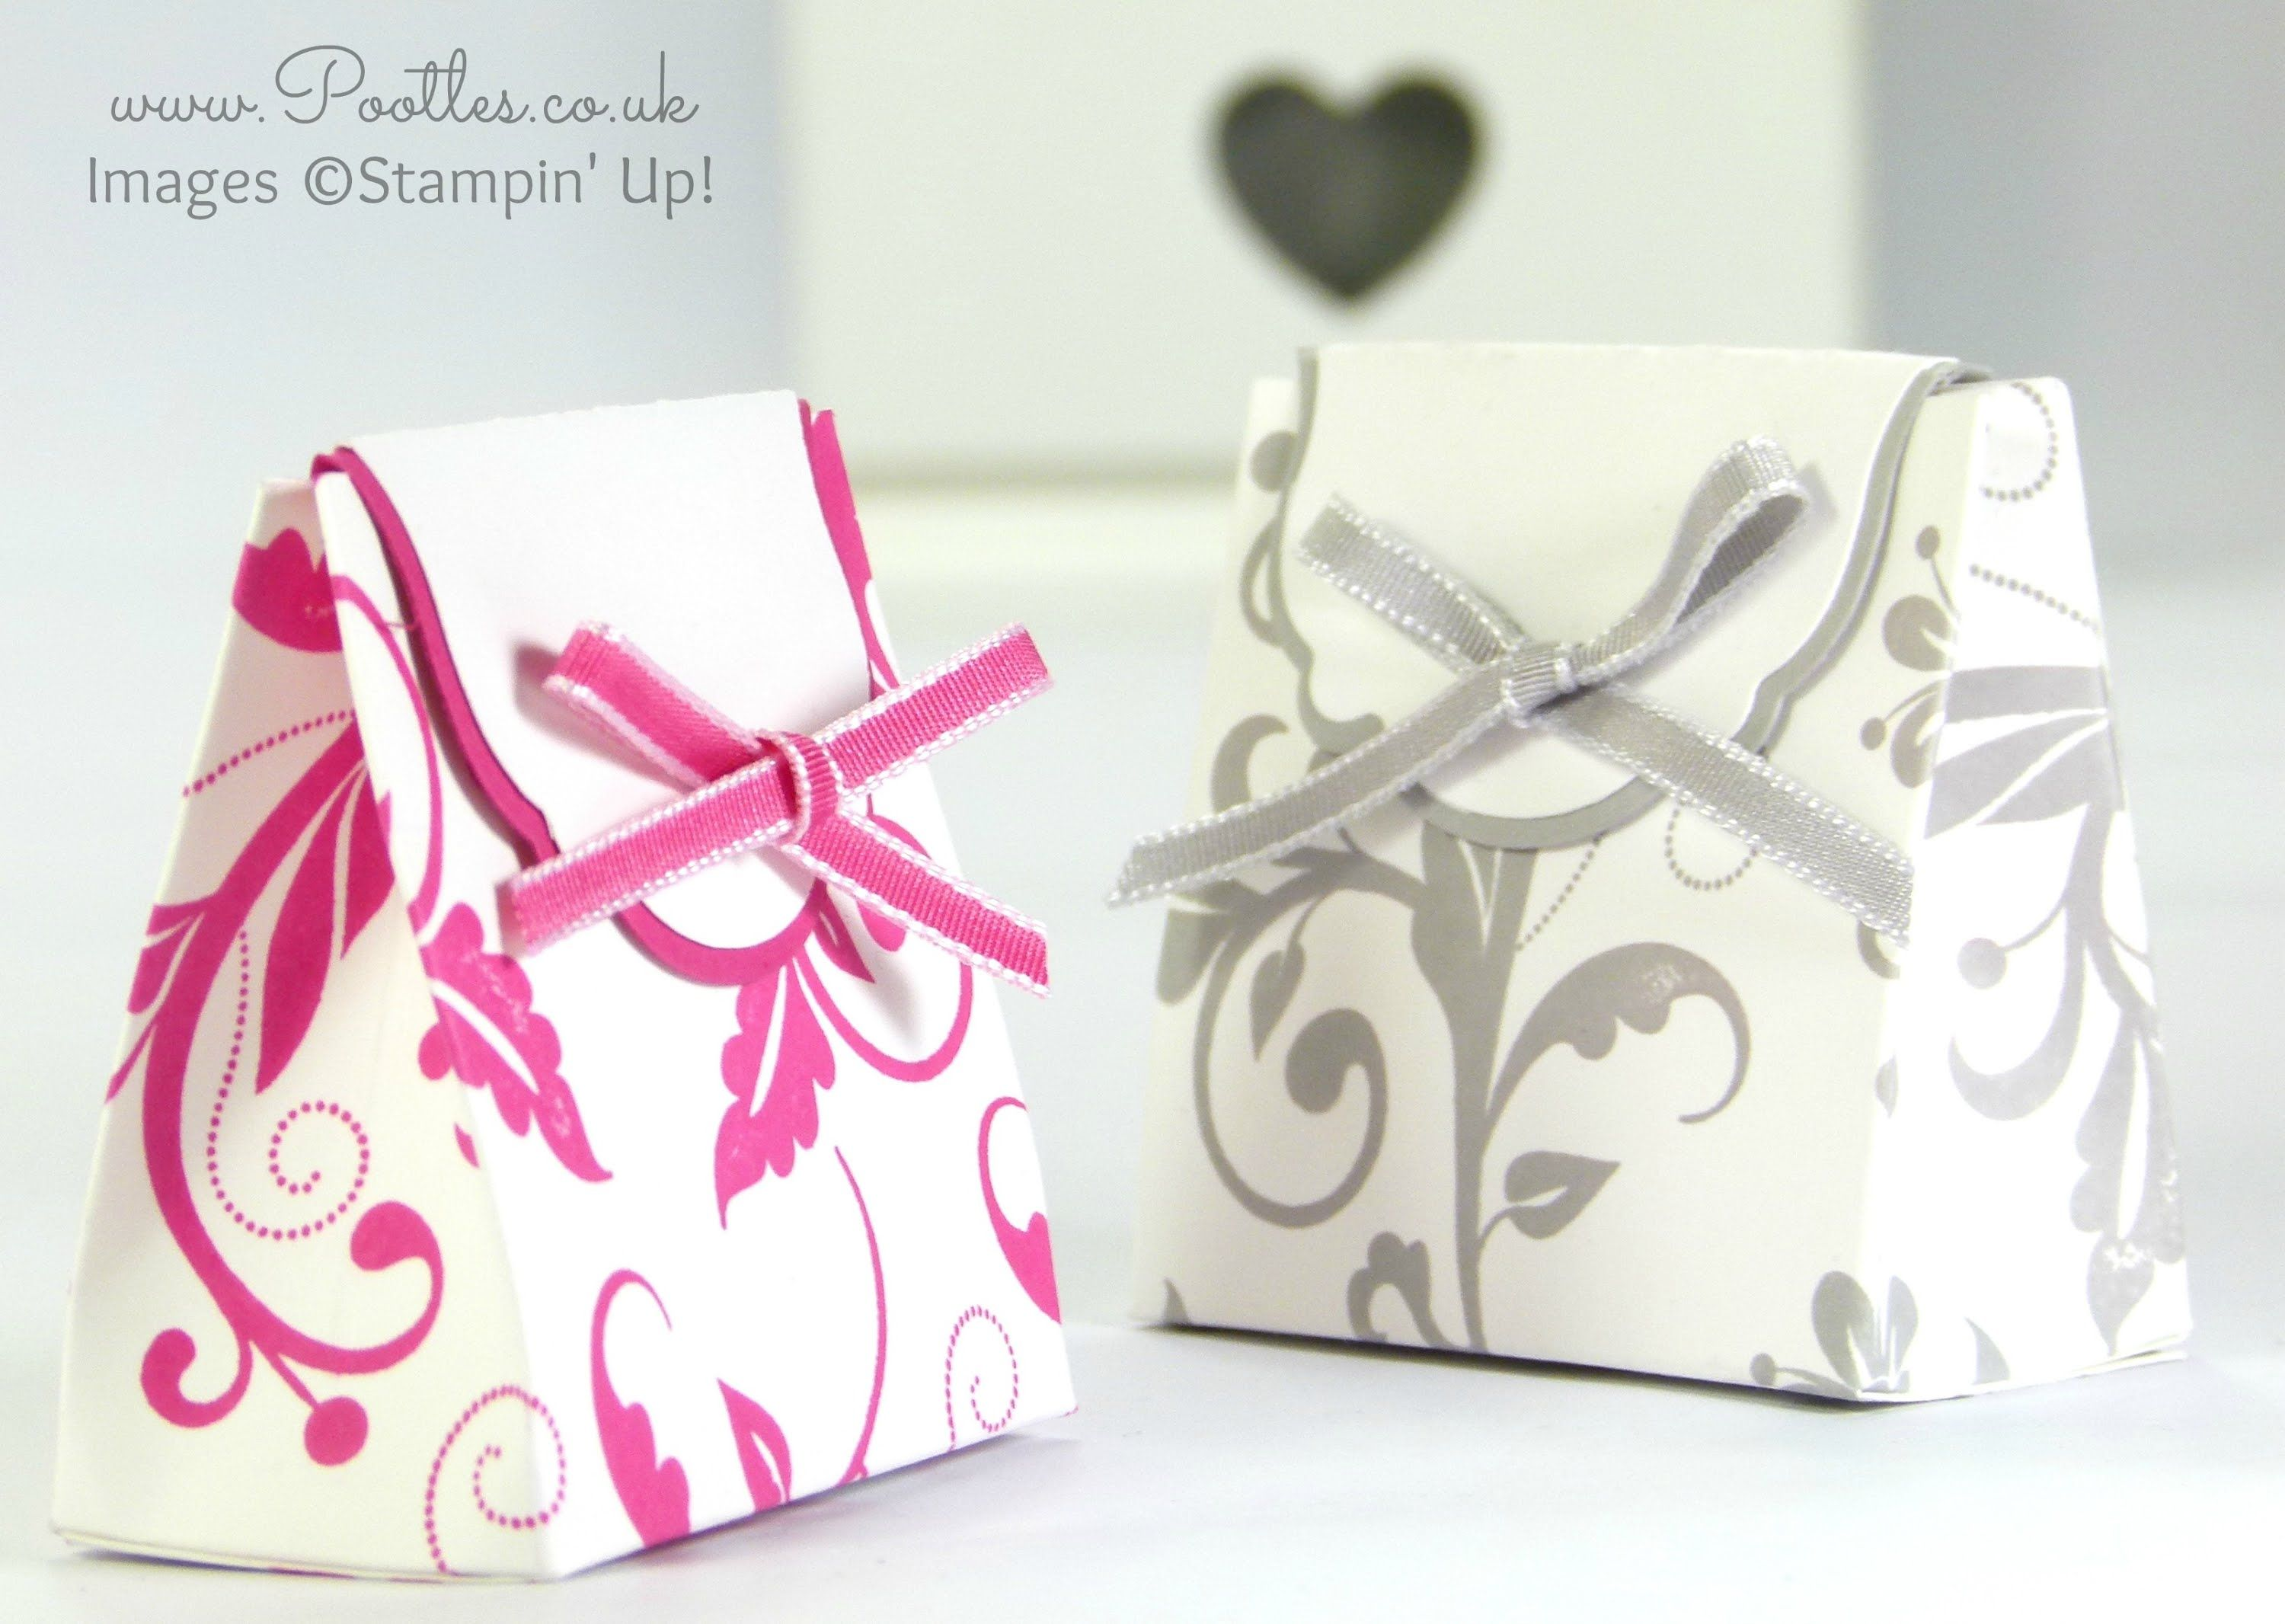 Wedding Favour Box Tutorial Using Stampin Up Supplies Bagsboxes